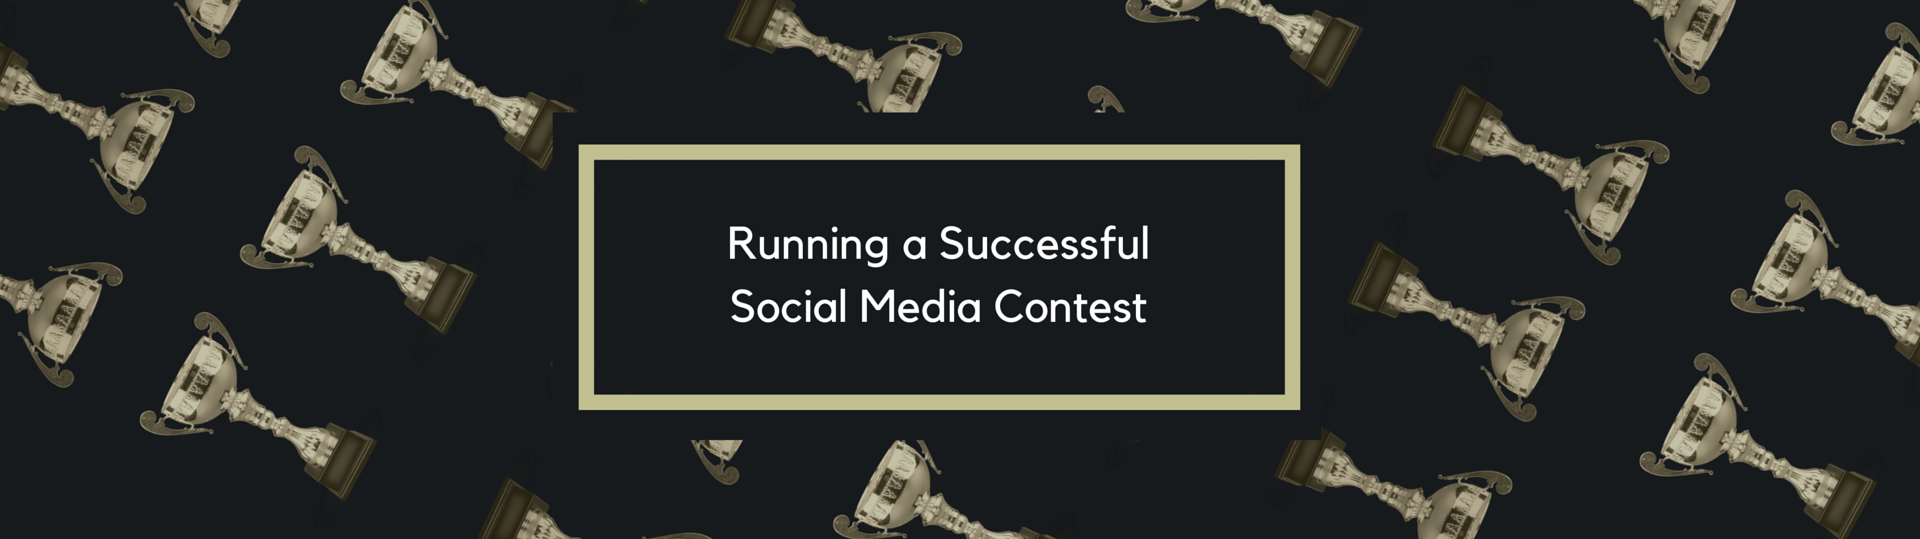 Running a Successful Social Media Contest (1)